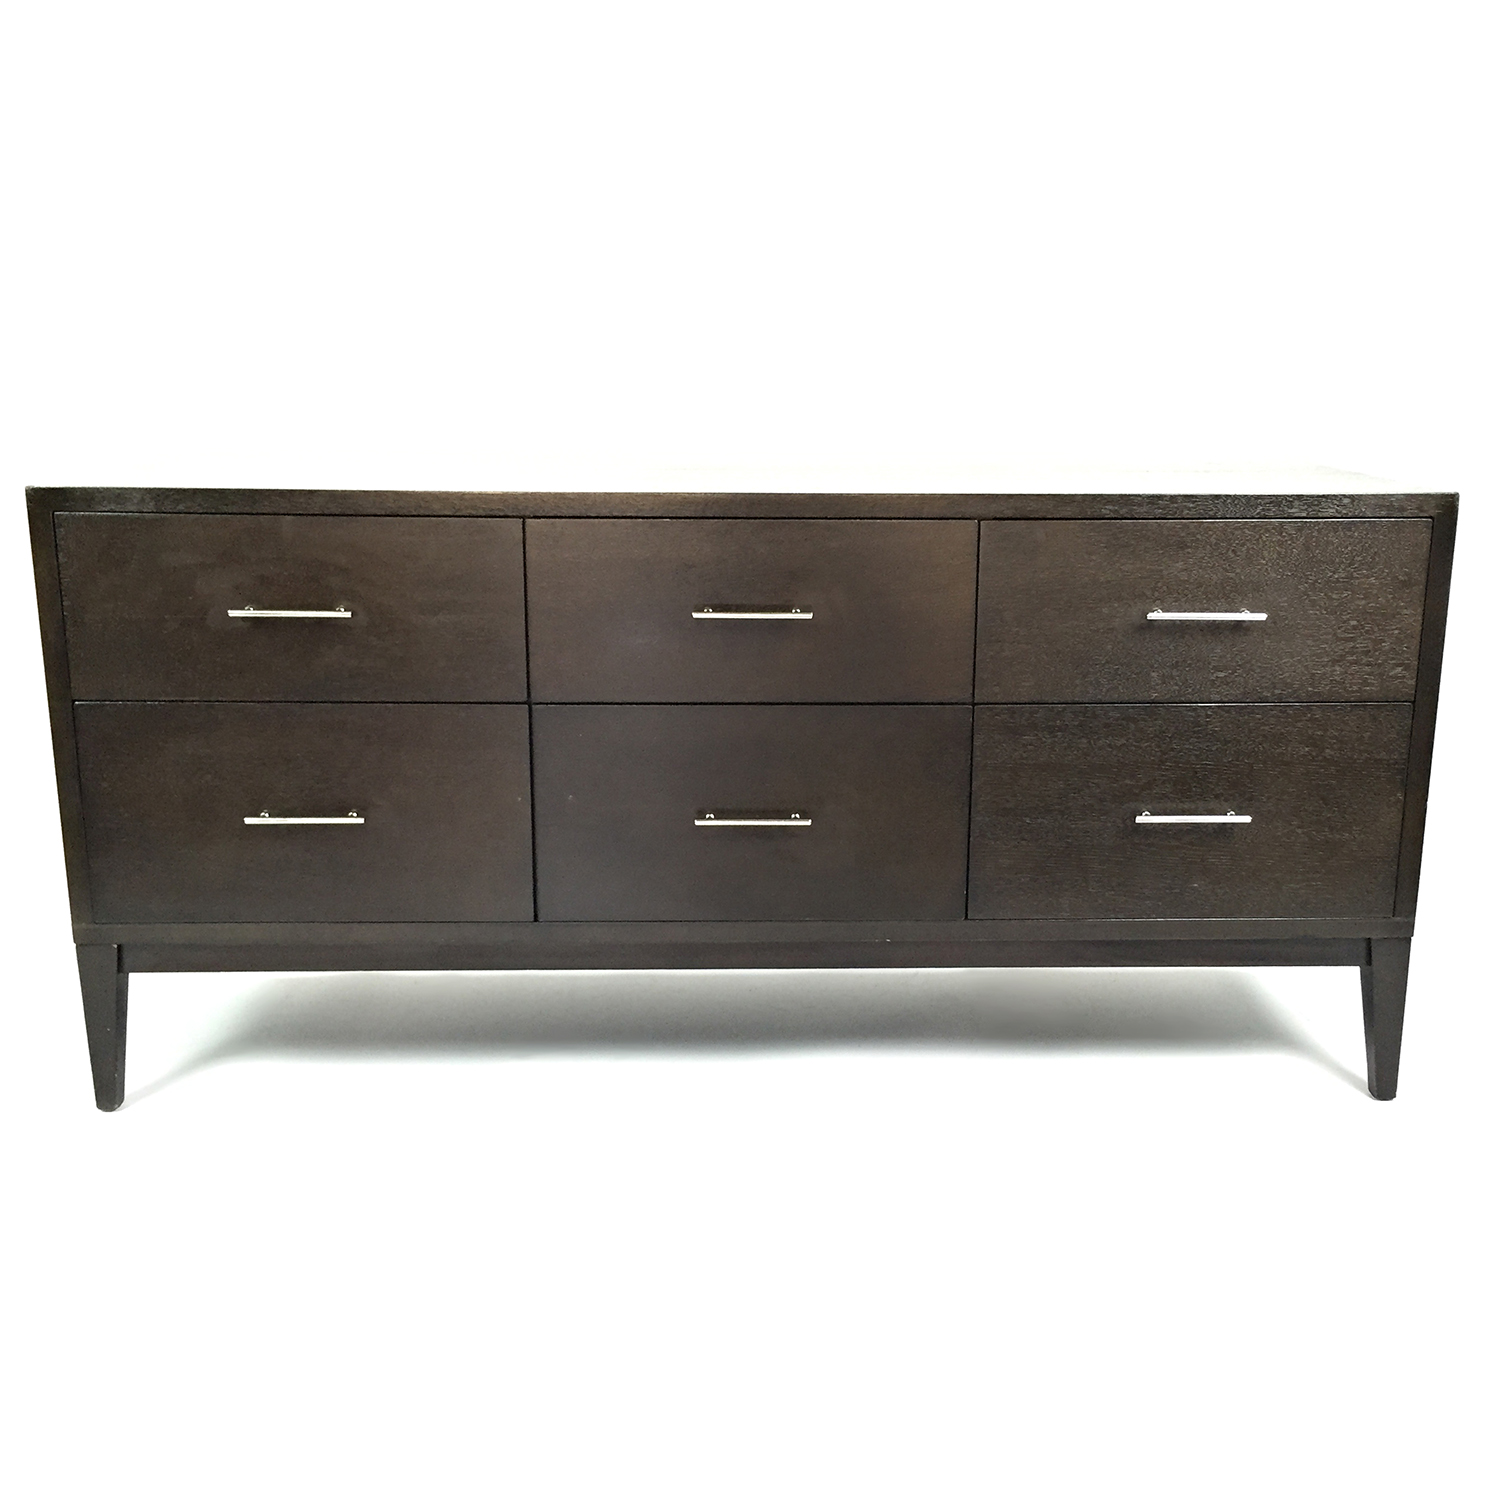 West Elm West Elm Narrow Leg Dresser on sale